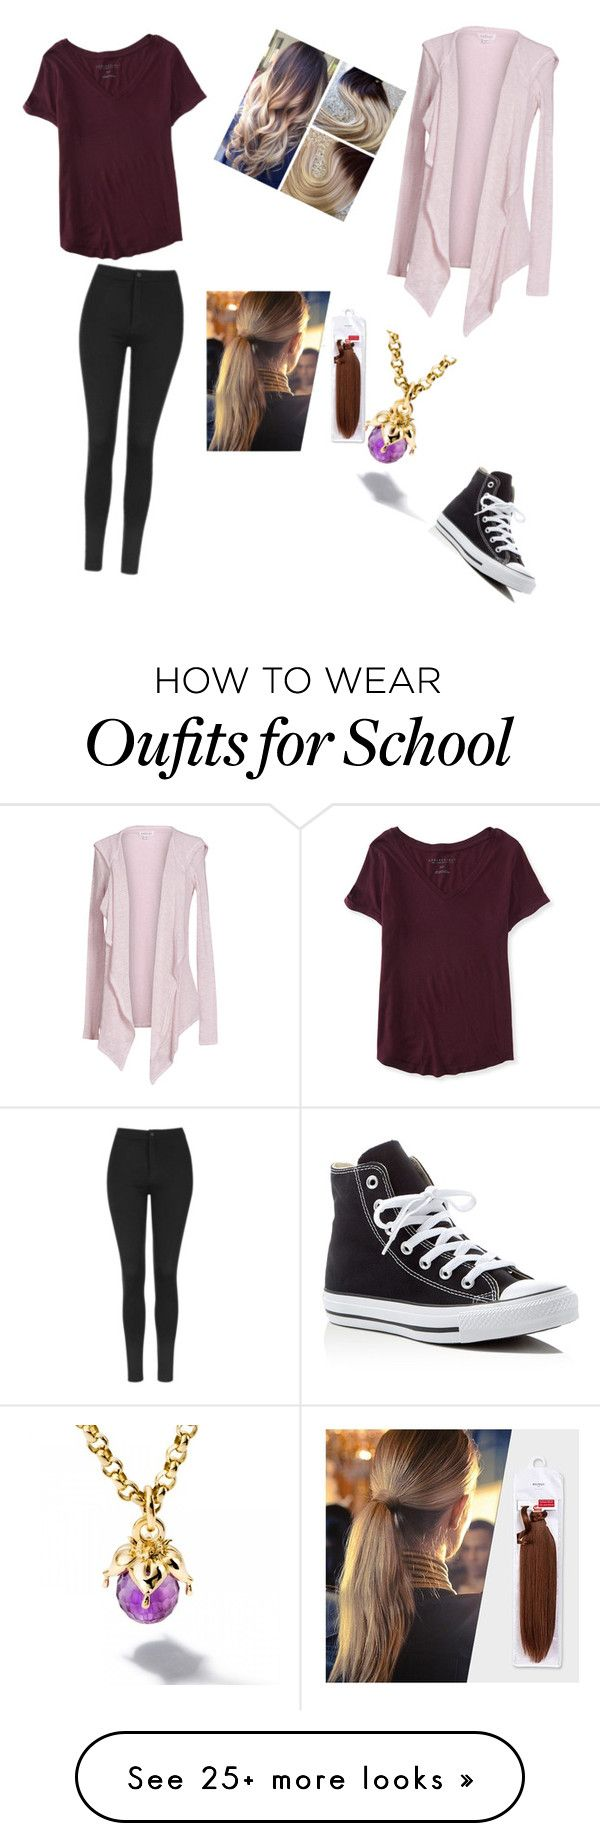 """School outfits @mahaahsan"" by annabeth999 on Polyvore featuring Velvet by Graham & Spencer, Aéropostale, Topshop, Balmain and Converse"